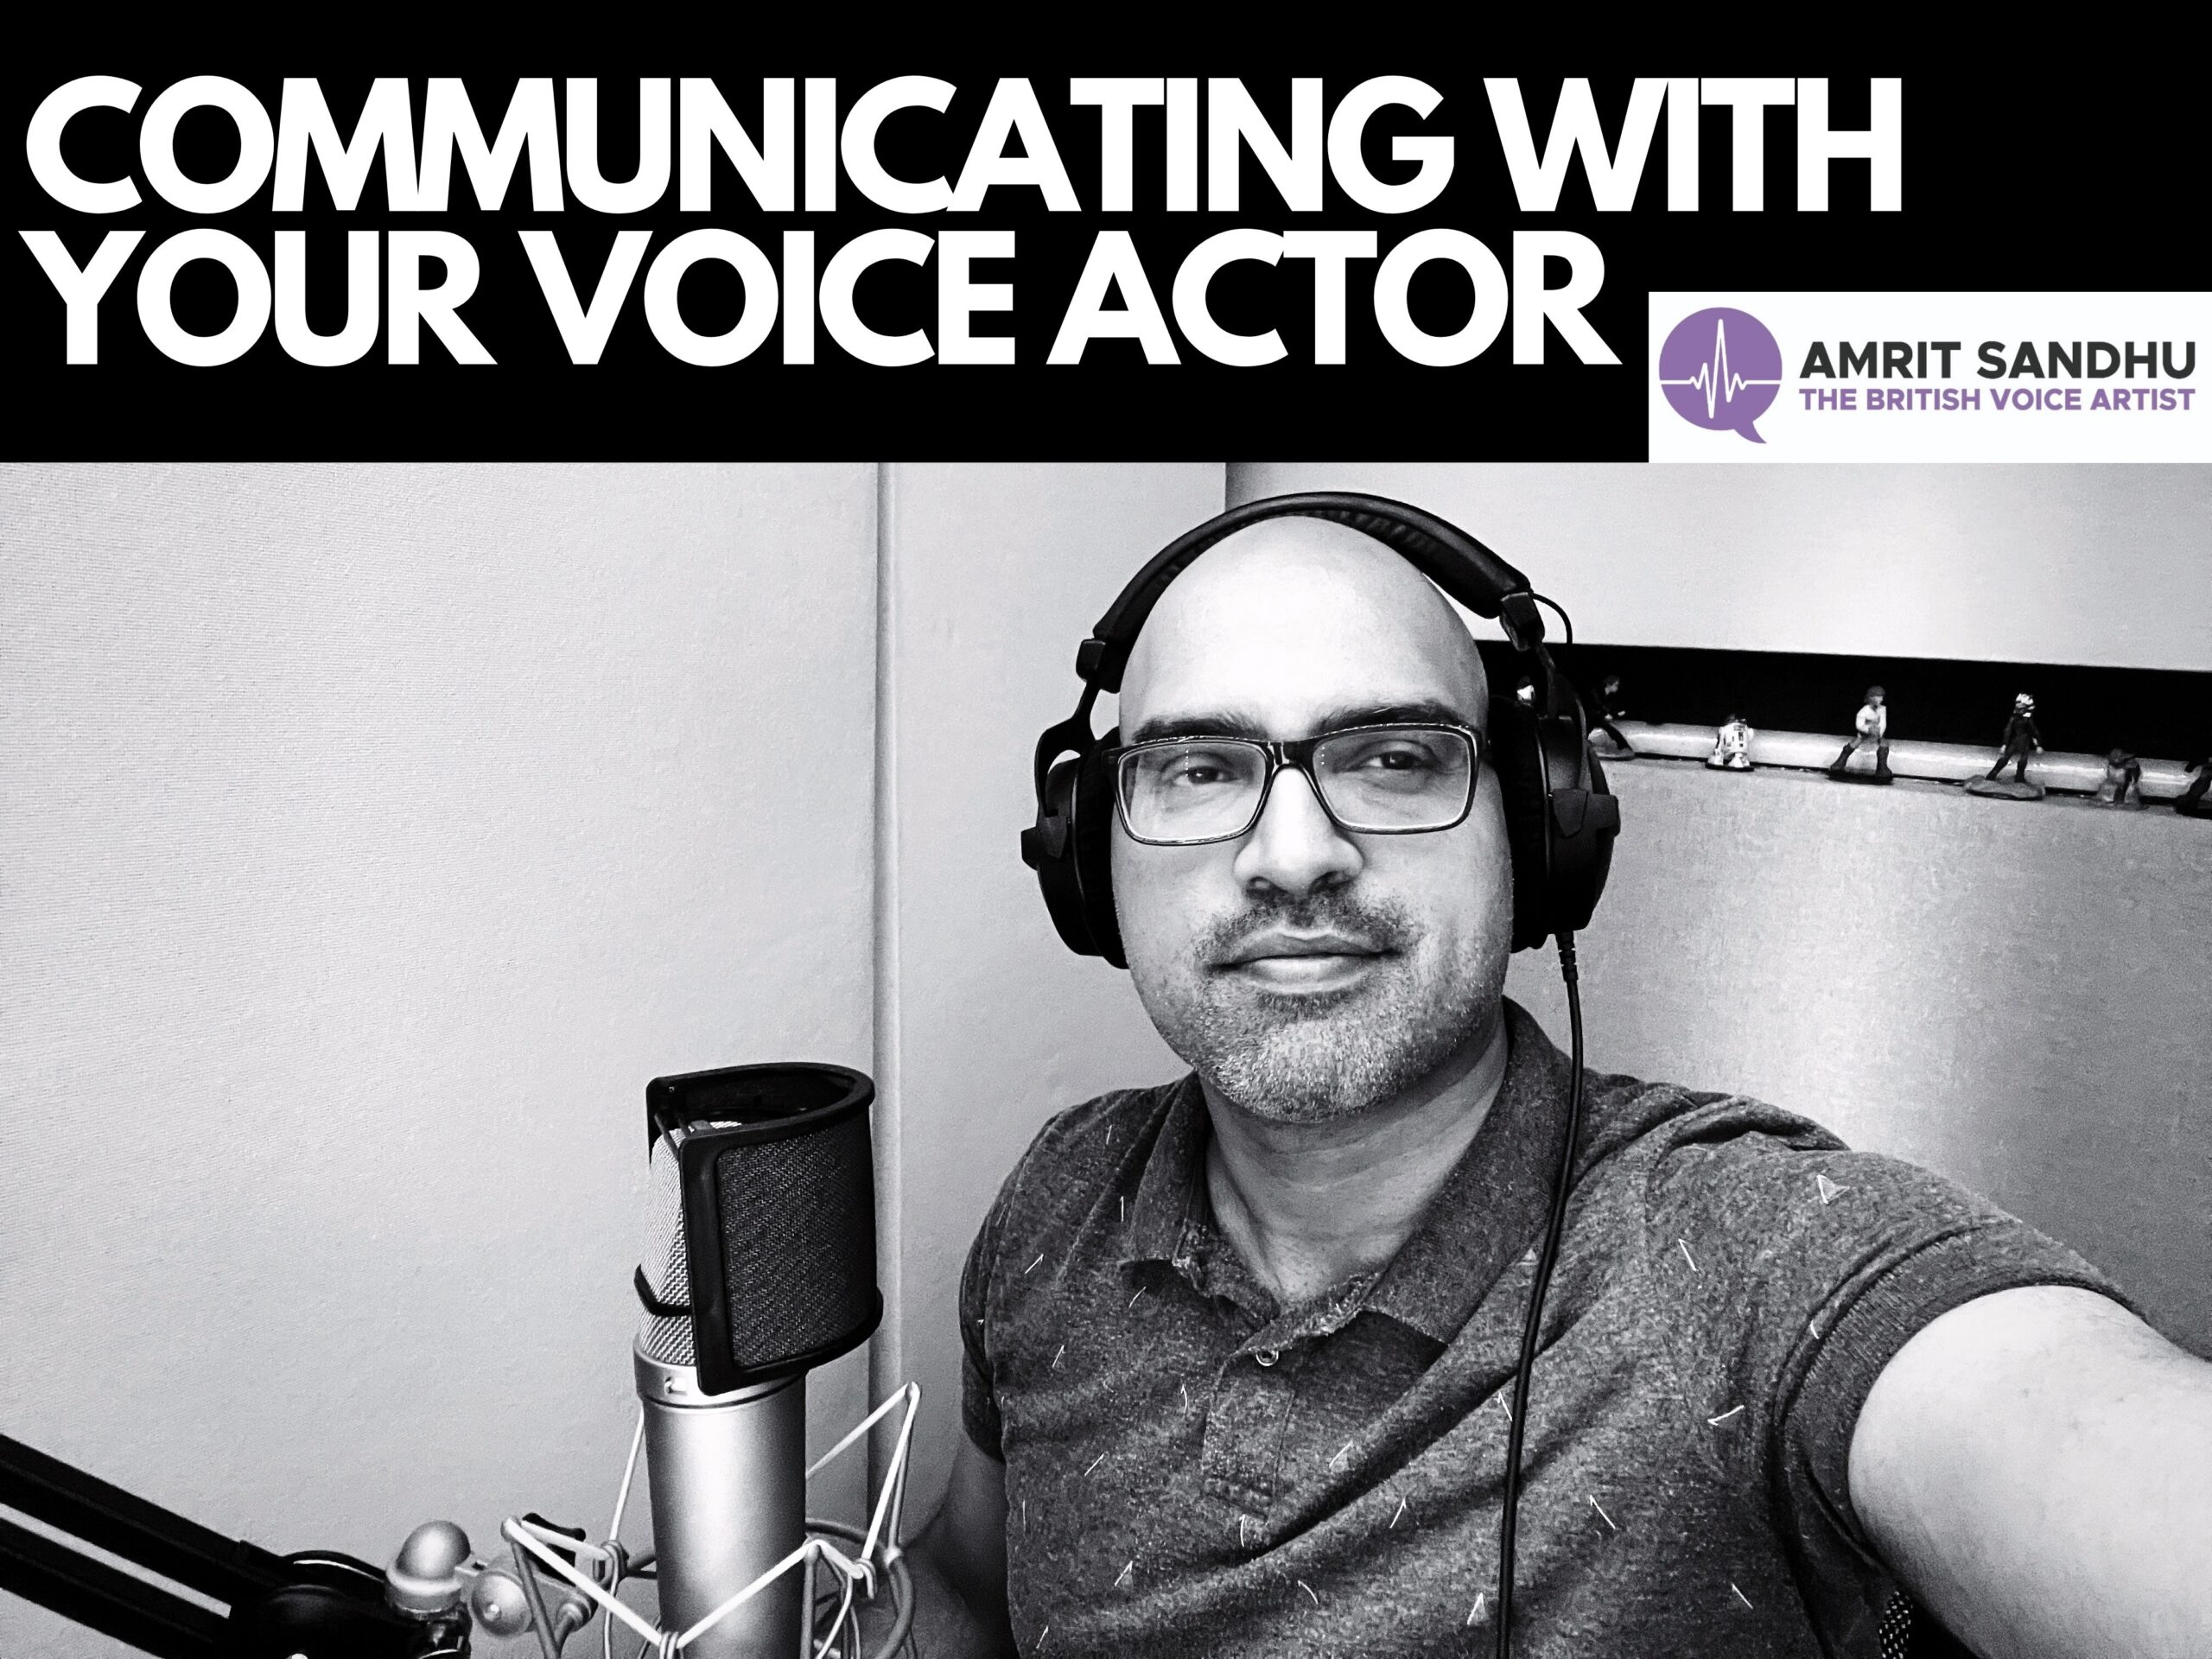 How to Get the Most Out of Your Voice Actor